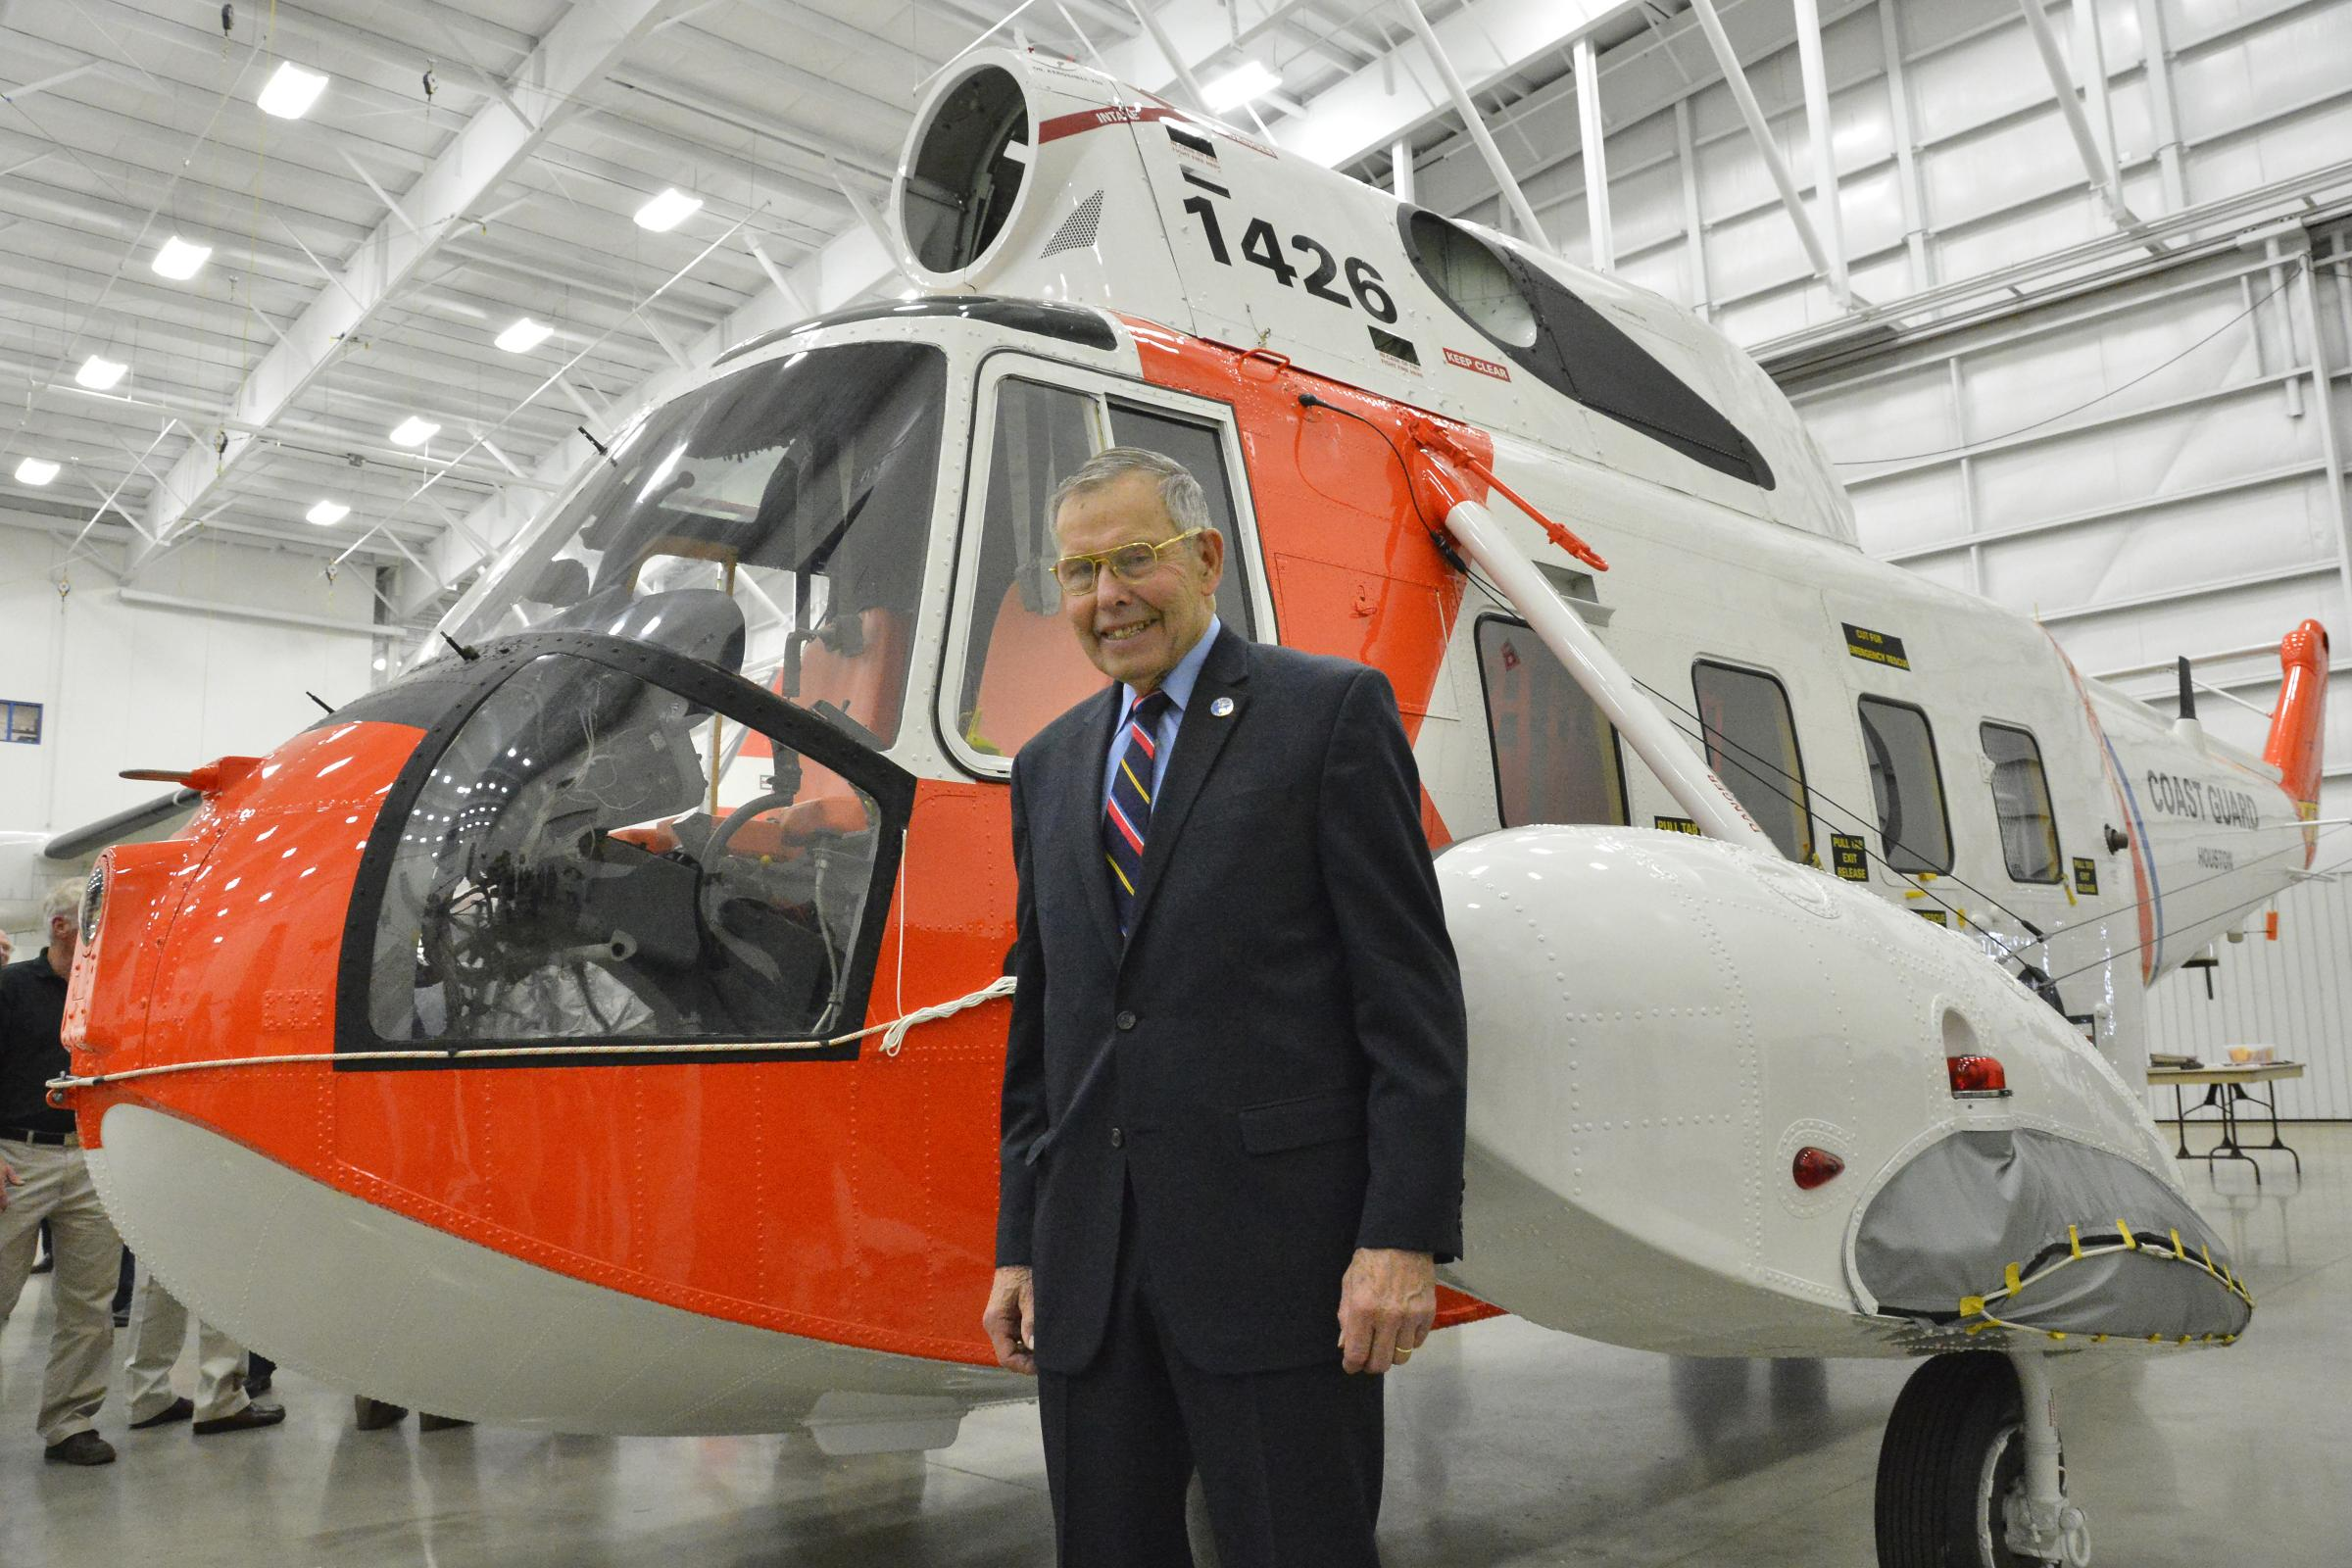 Retired Coast Guard Pilot Sees His Helicopter Installed at